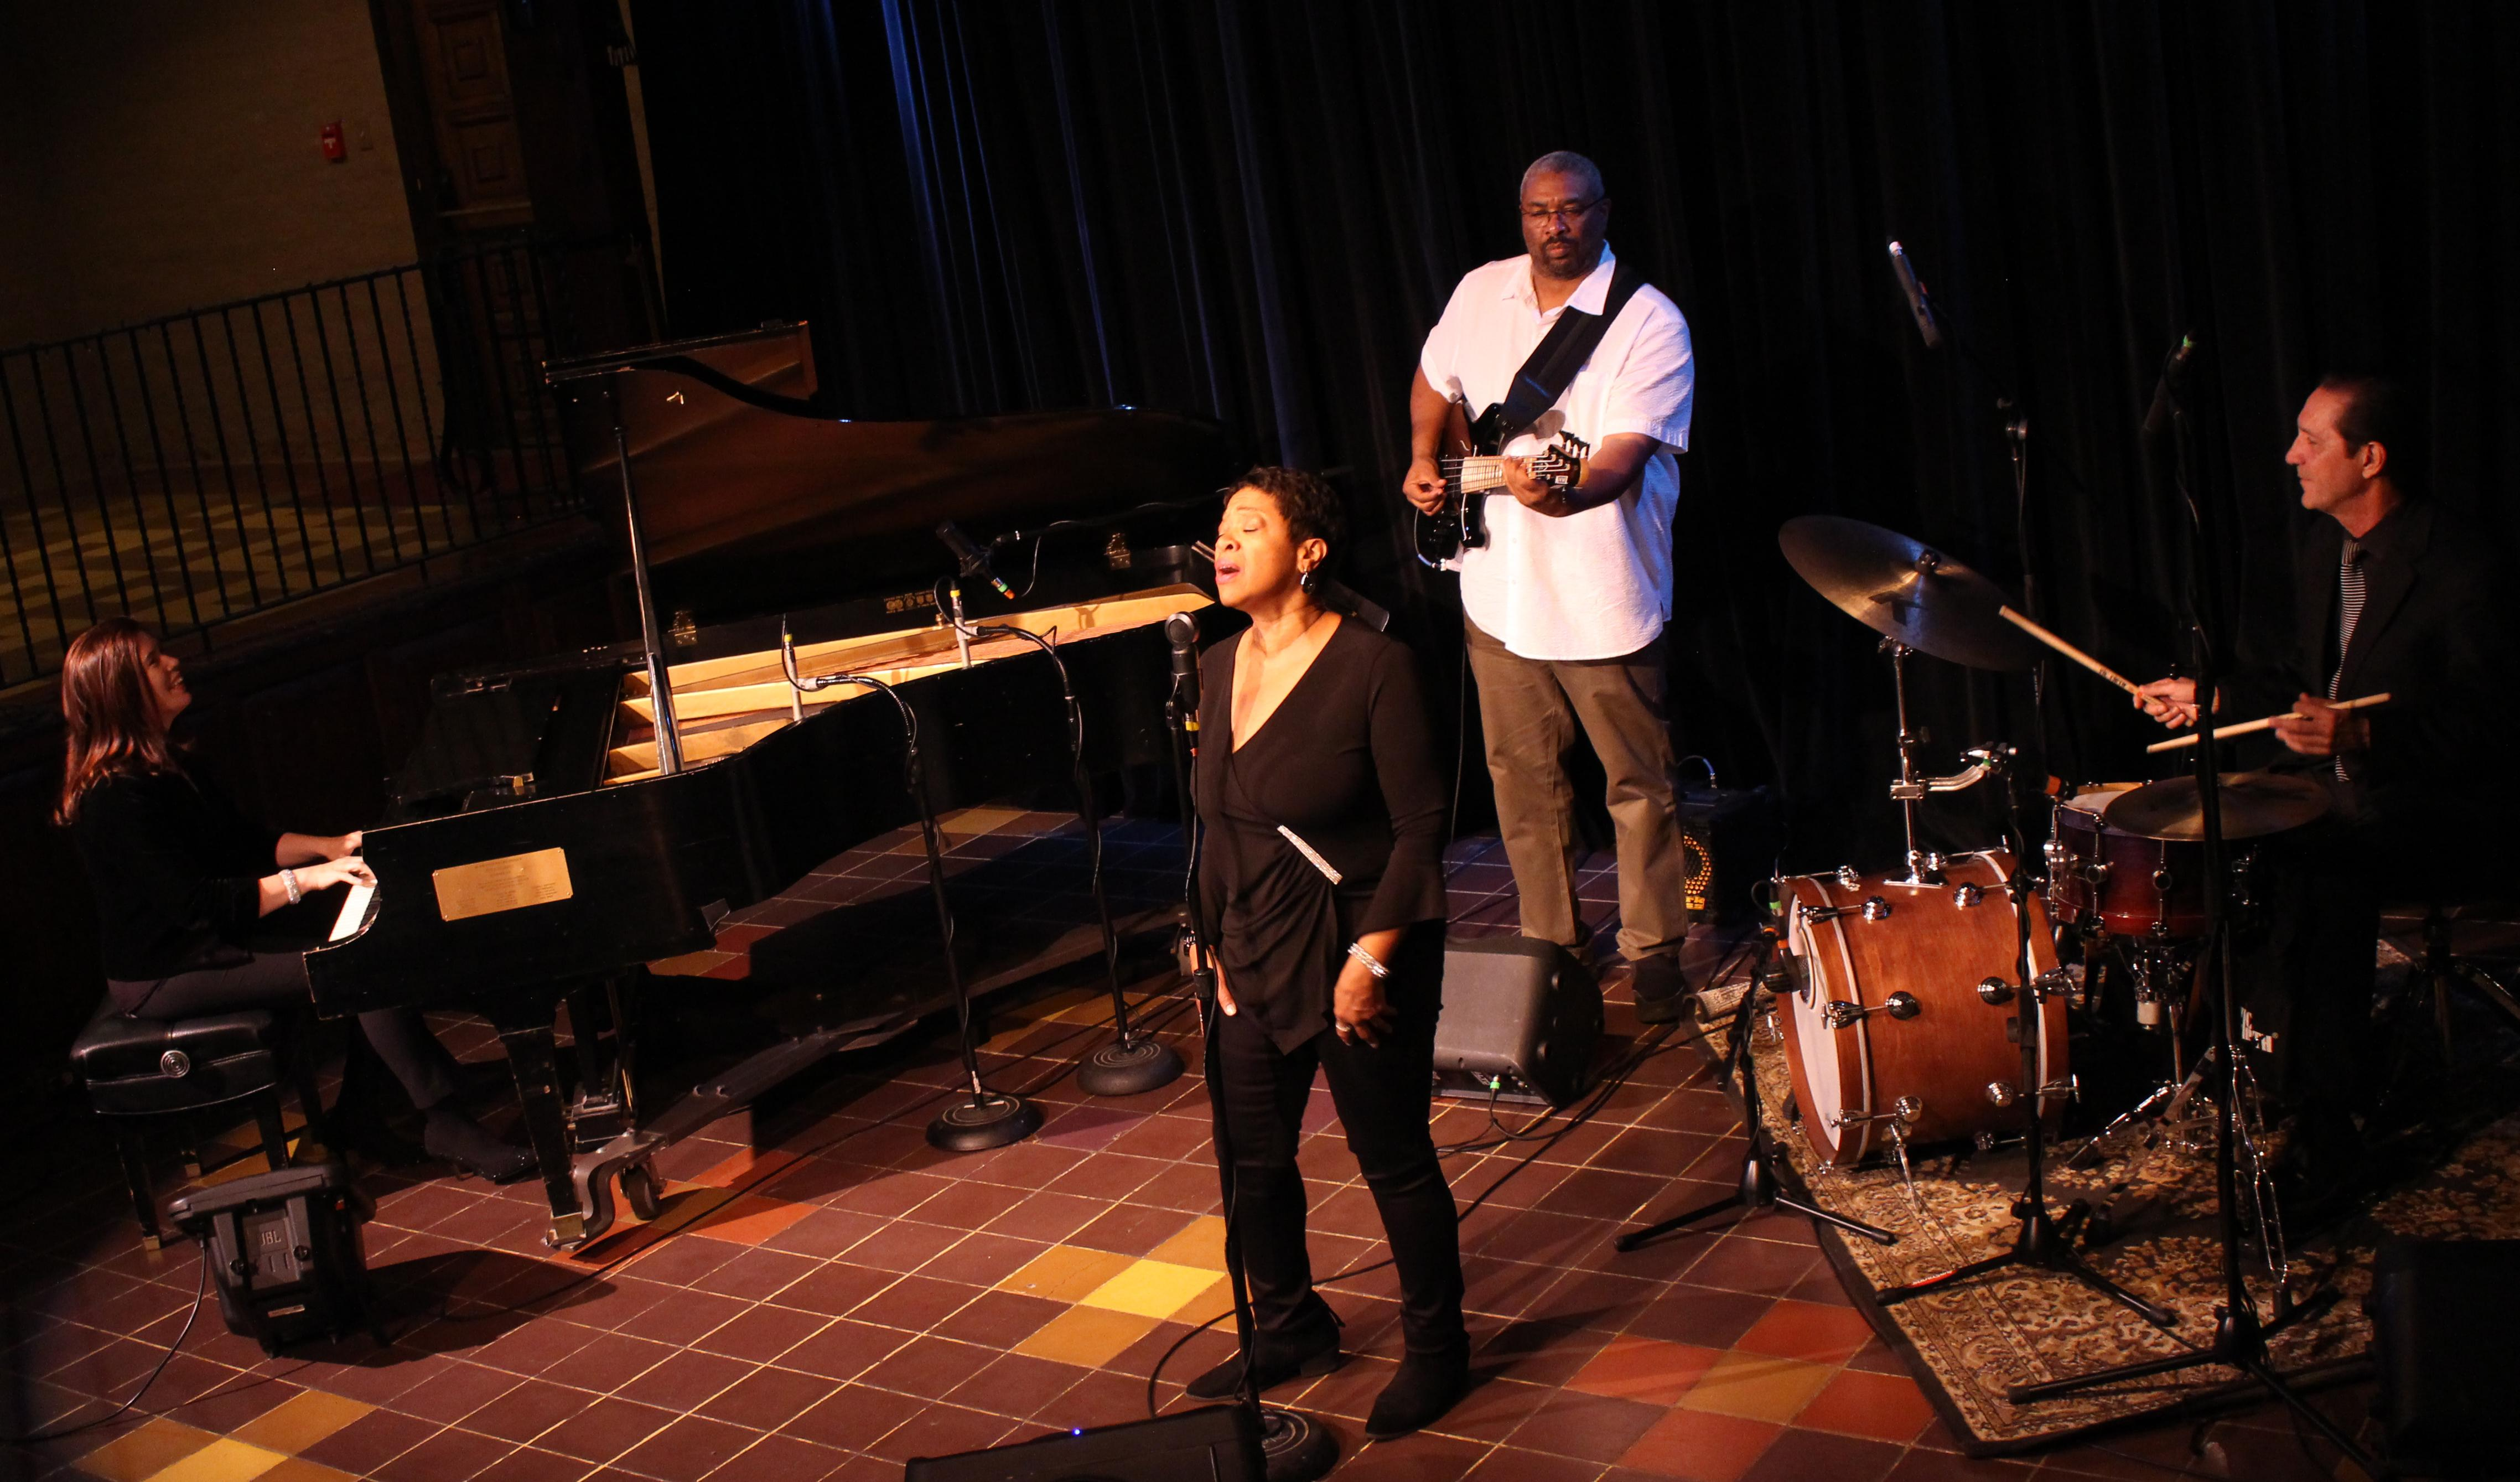 Pianist, vocalist, bassist and drummer jam on stage.